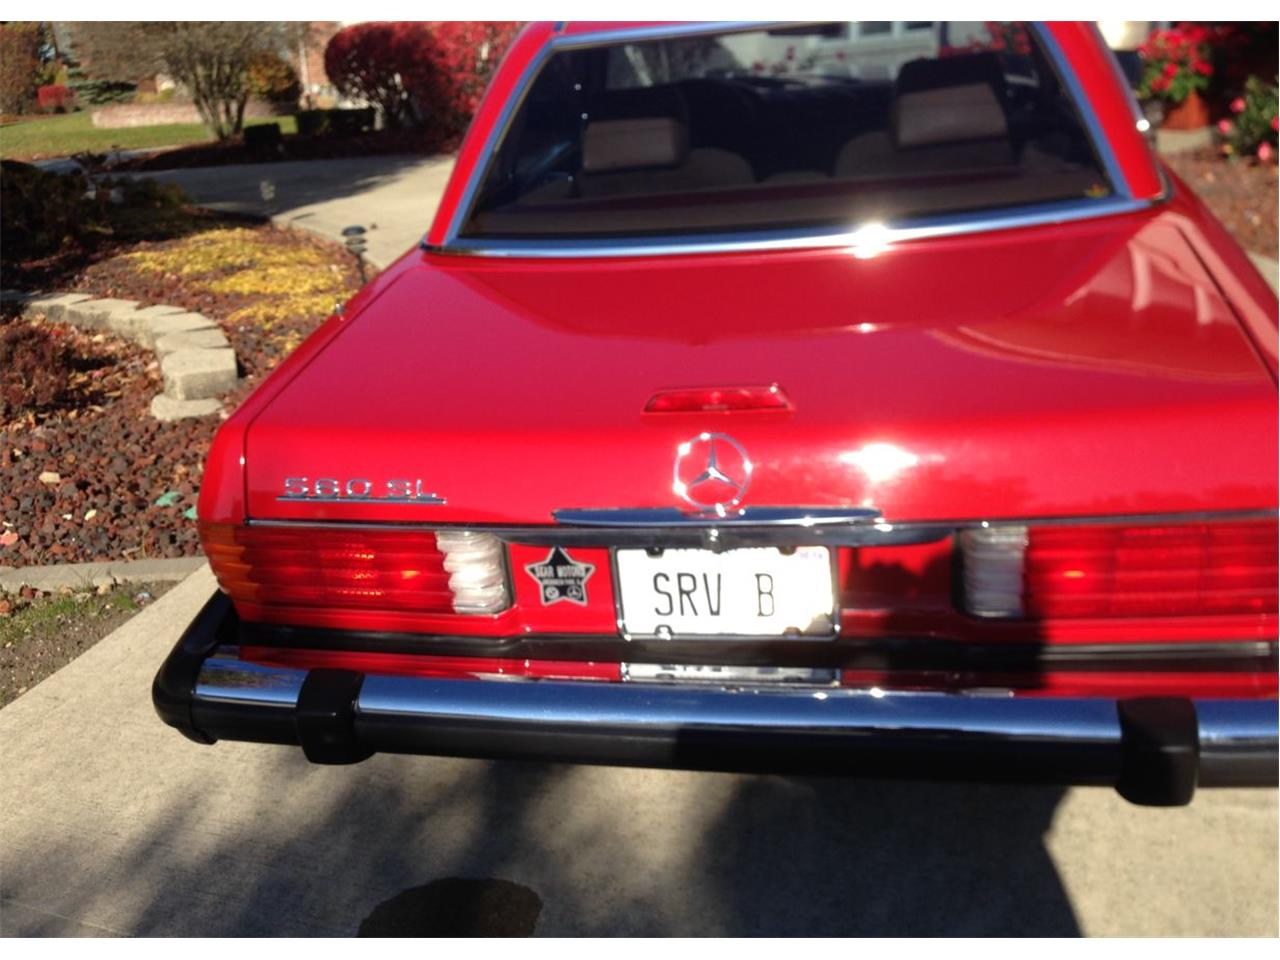 Large Picture of '88 Mercedes-Benz 560SL located in Orland park Illinois - $35,000.00 Offered by a Private Seller - FVWF